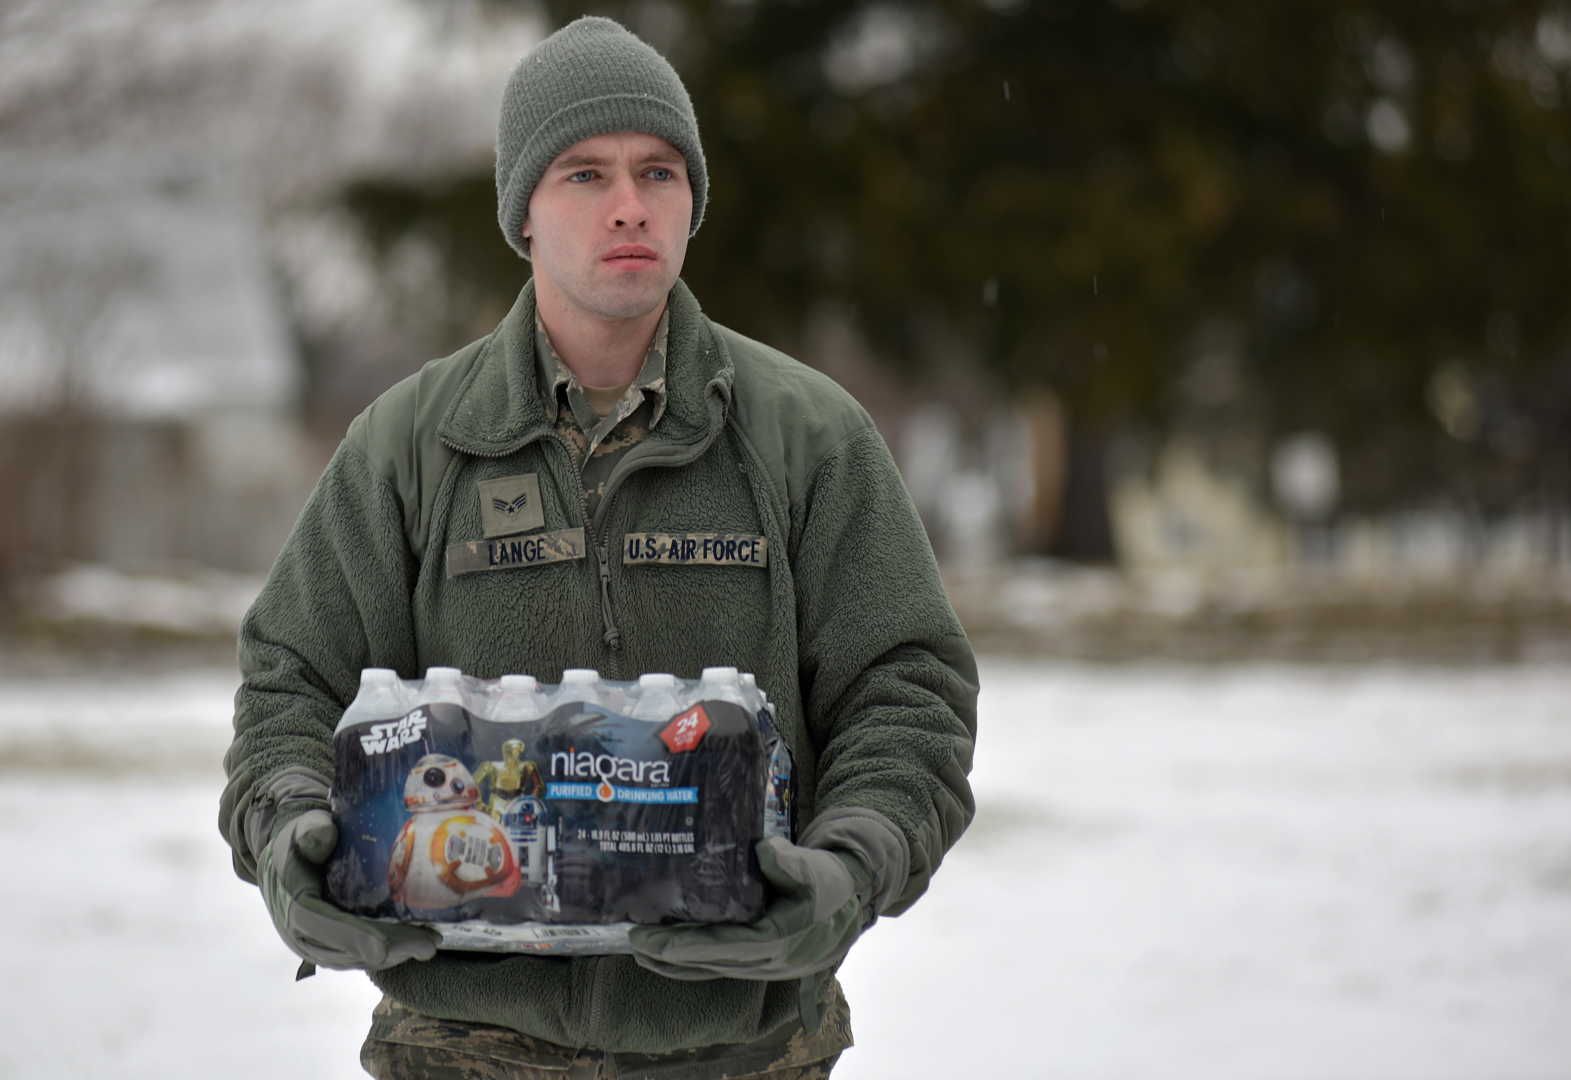 Flint Water Response Team by Michigan State Police Emergency Management and Homeland Security / CC BY-ND 2.0